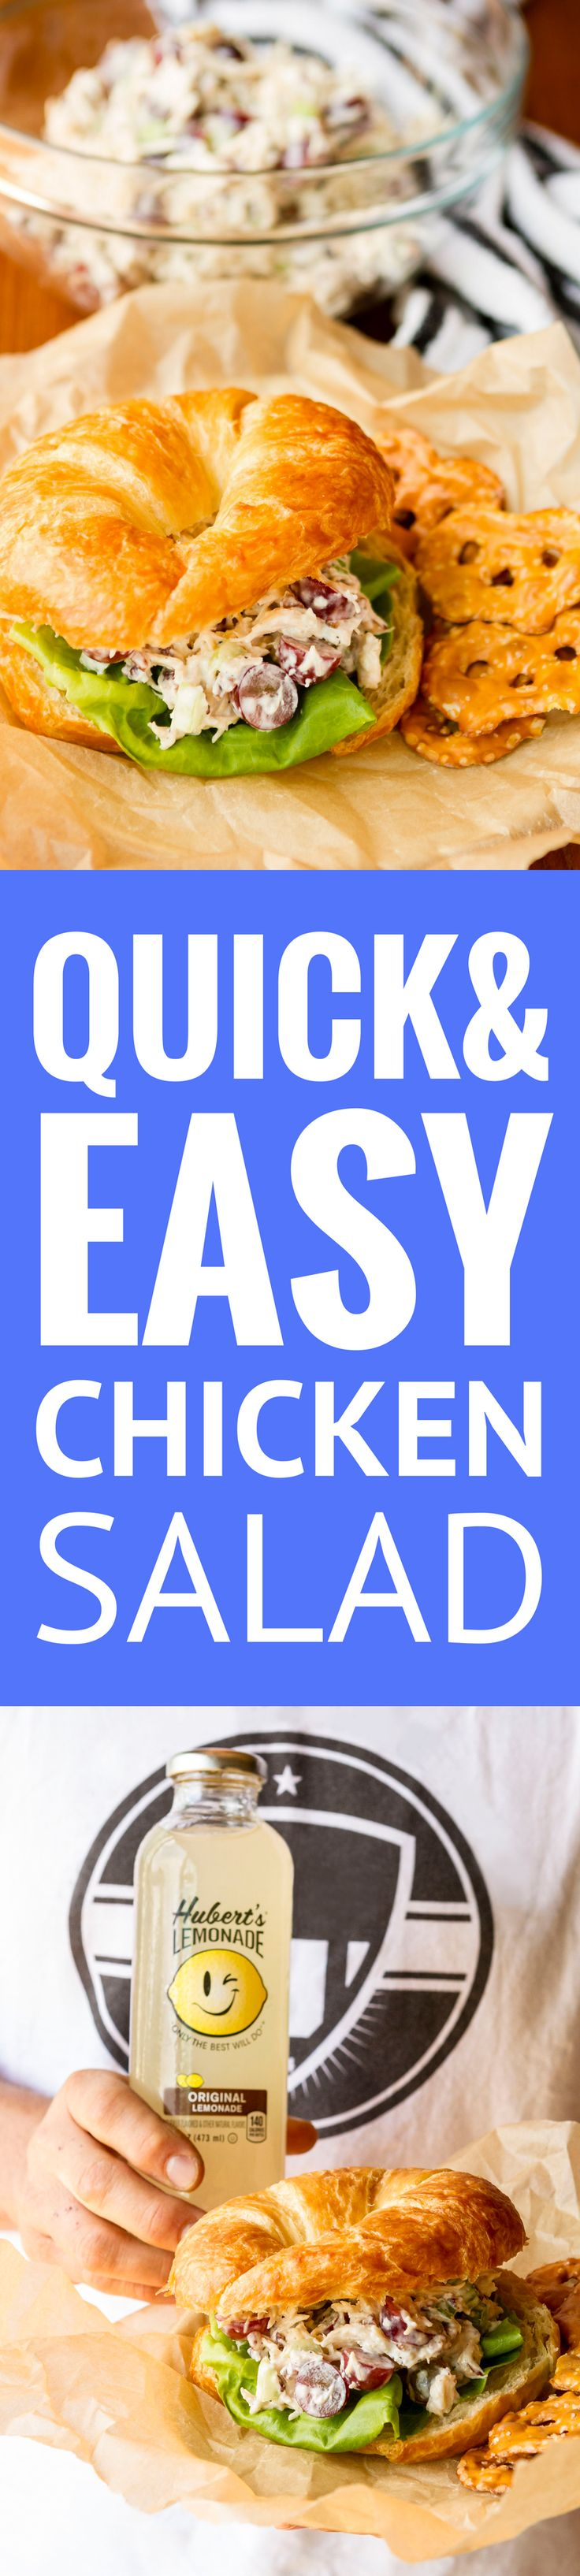 Easy Chicken Salad -- this easy chicken salad recipe, filled with fresh grapes and roasted pecans, makes a quick, delicious, and satisfying meal!  NEED TO TRY.